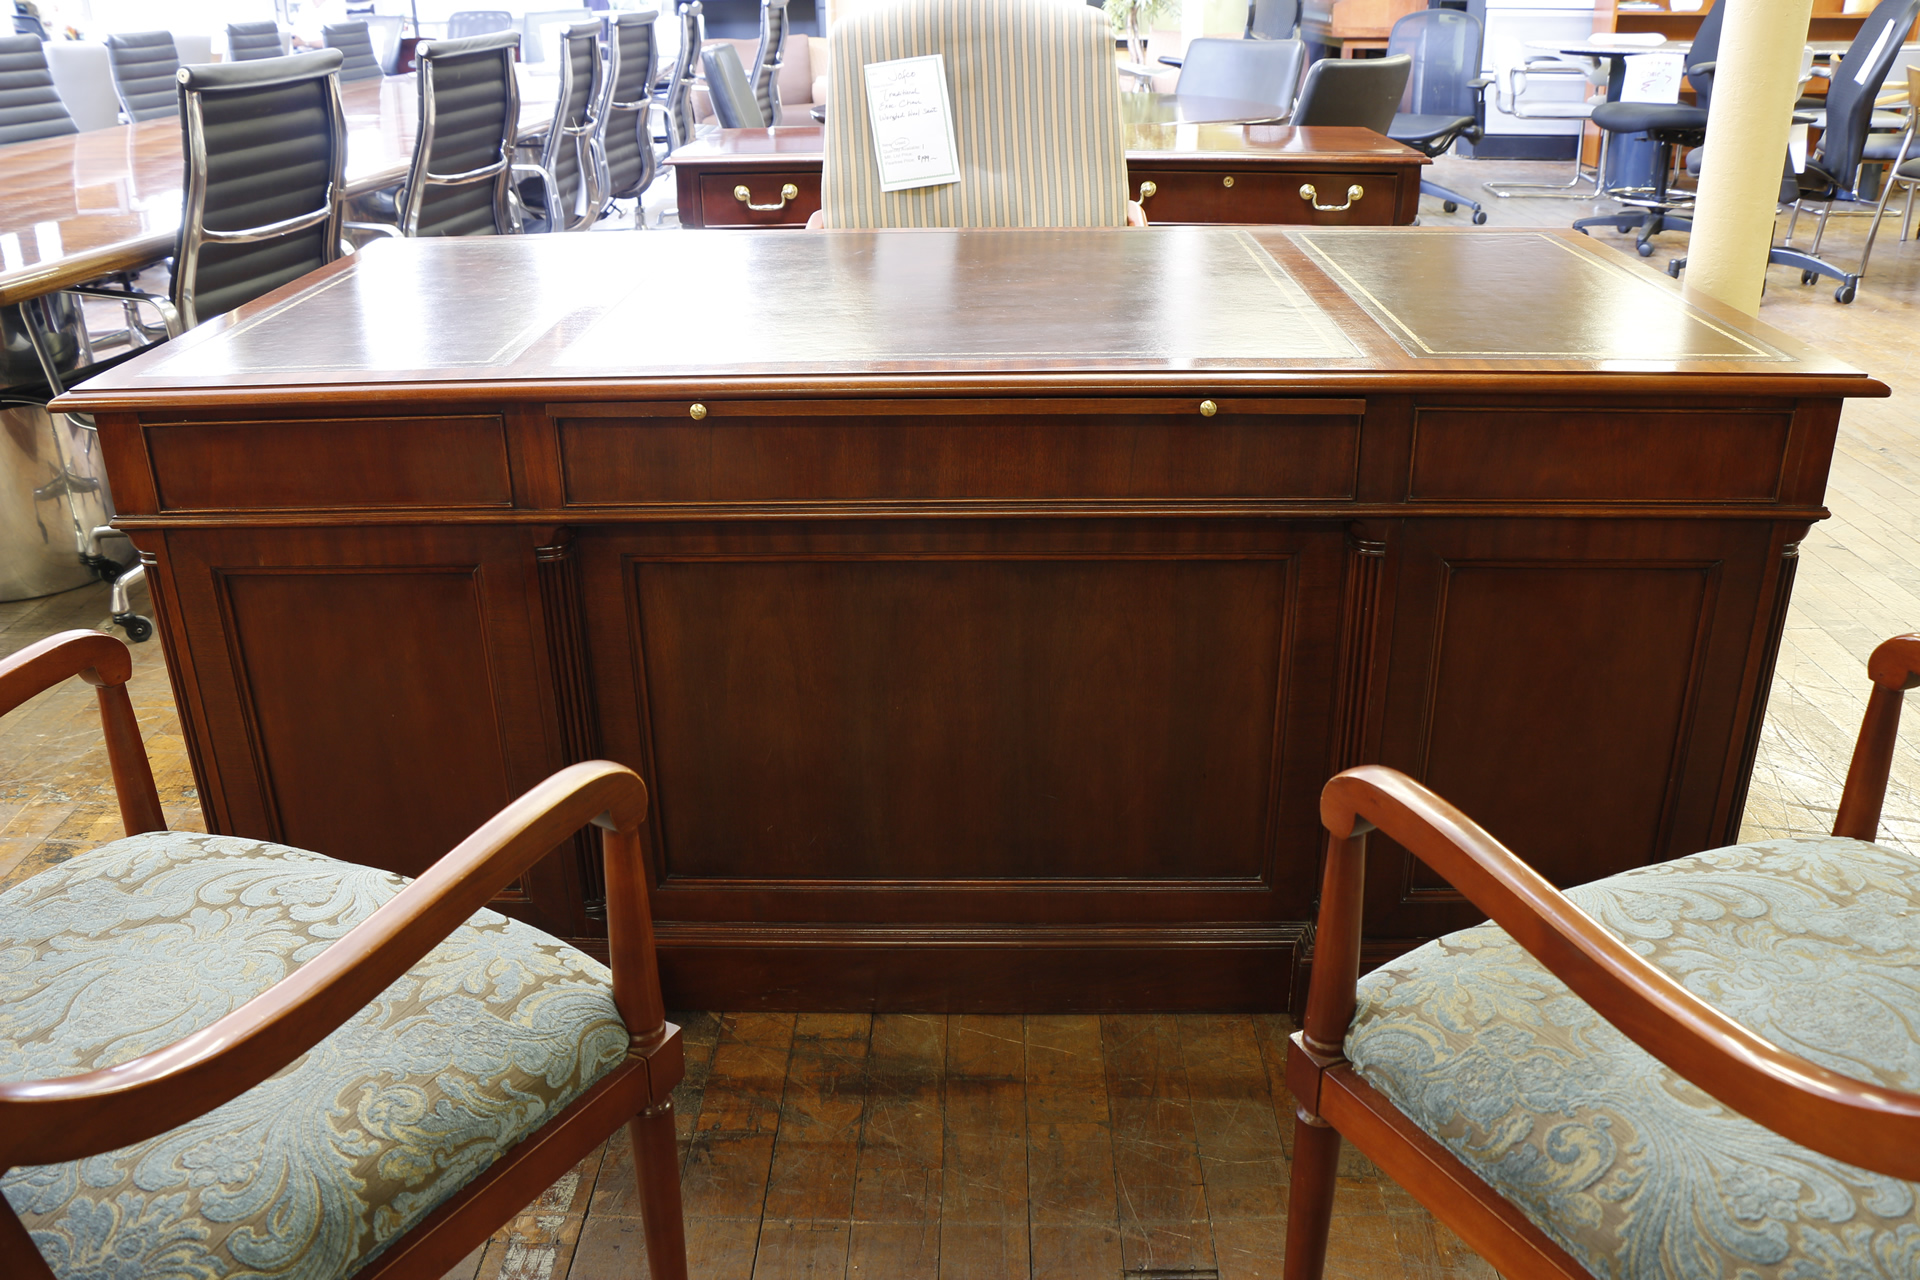 peartreeofficefurniture_peartreeofficefurniture_mg_4239.jpg